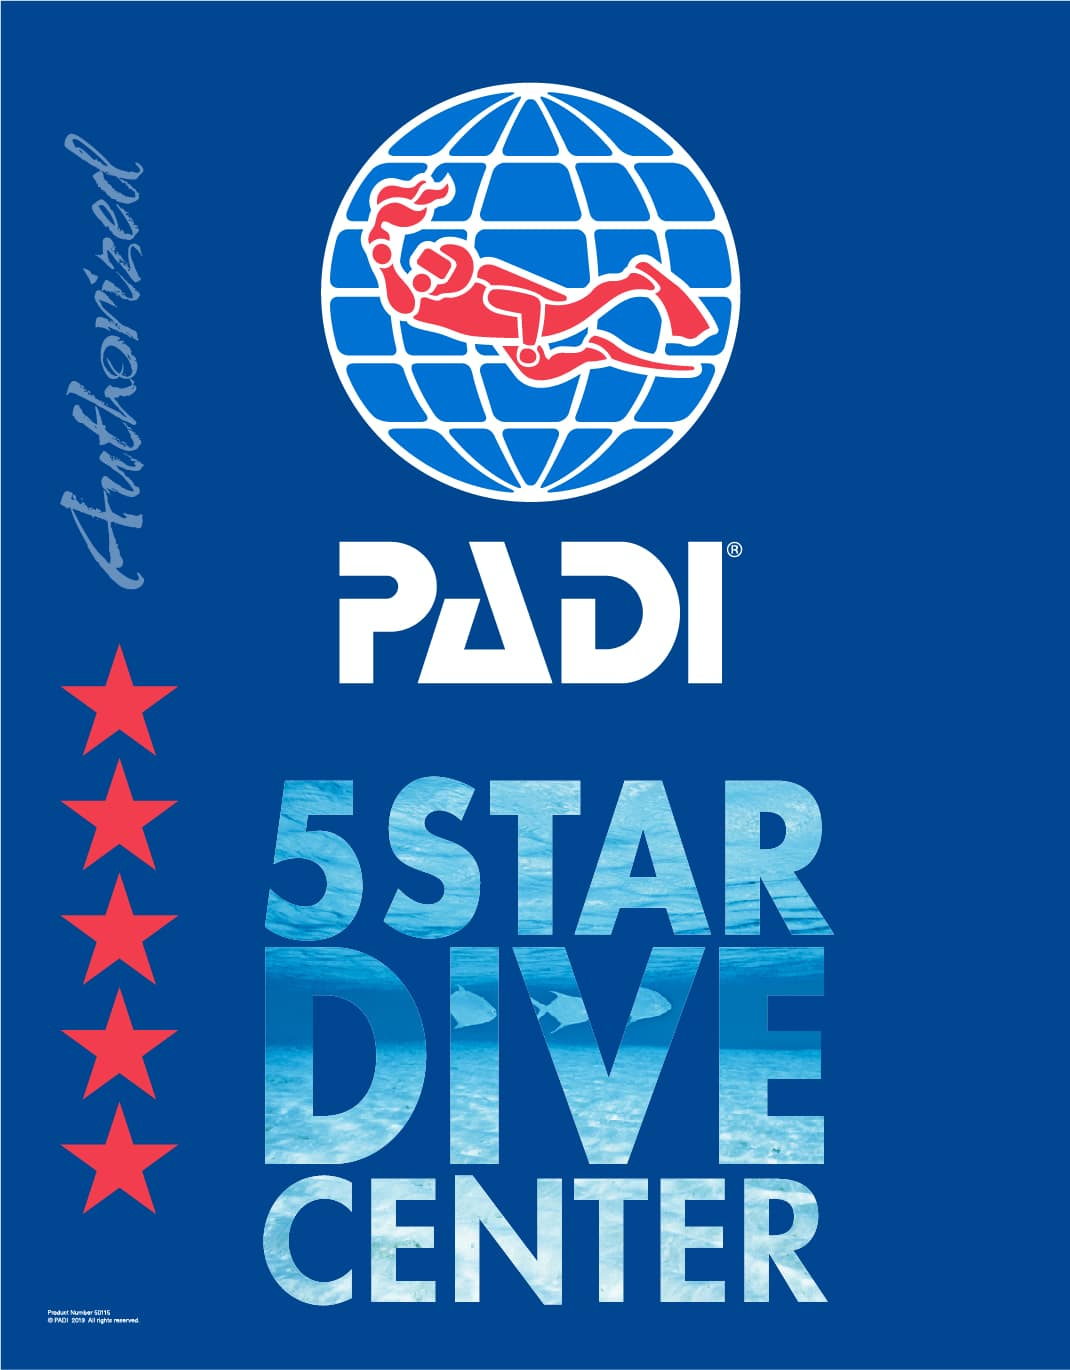 PADI 5 star dive center certificate